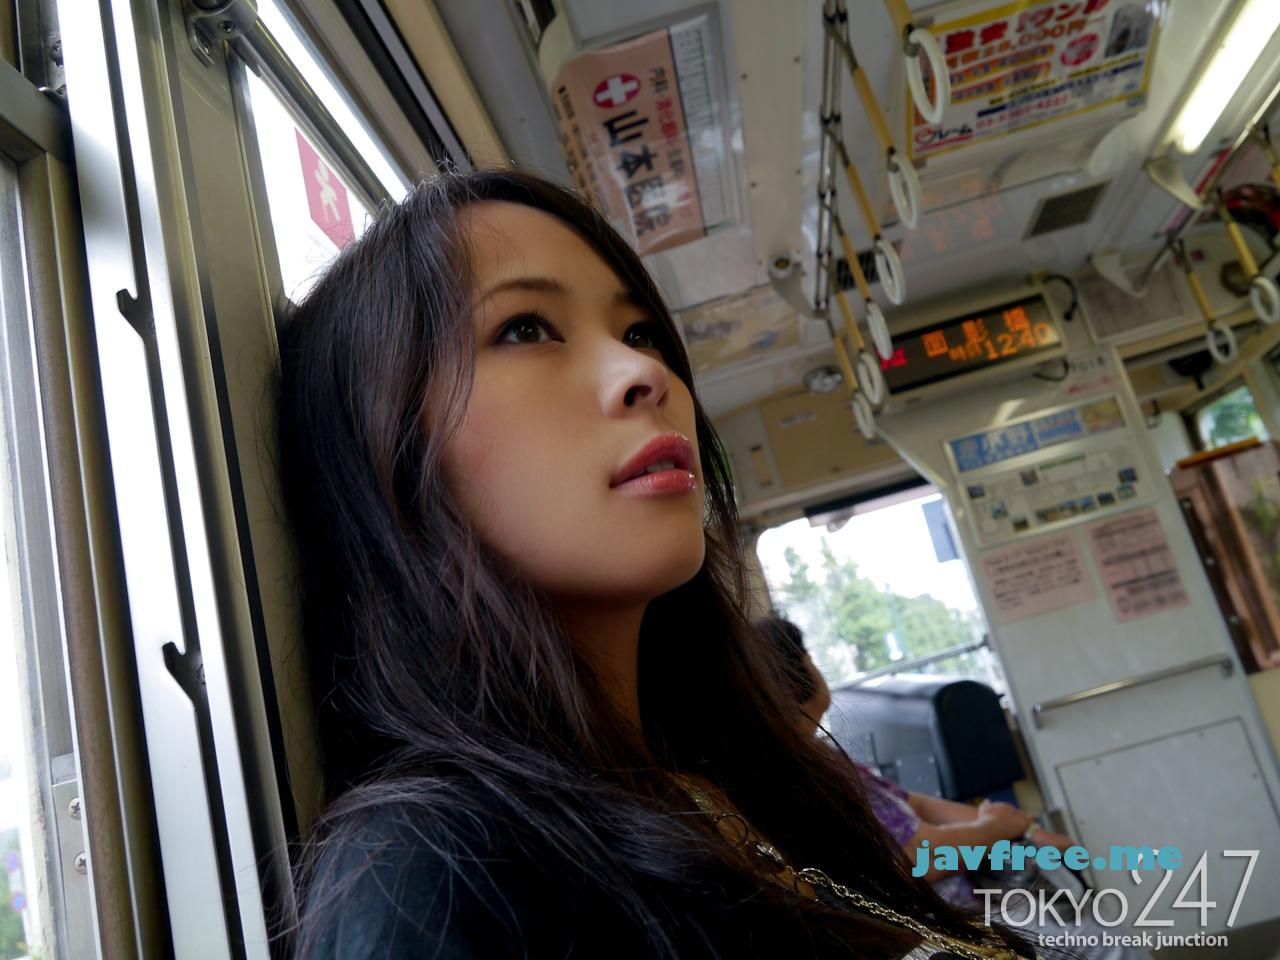 Tokyo-247 408kyouko 真木今日子 - image ms_408kyouko005 on https://javfree.me